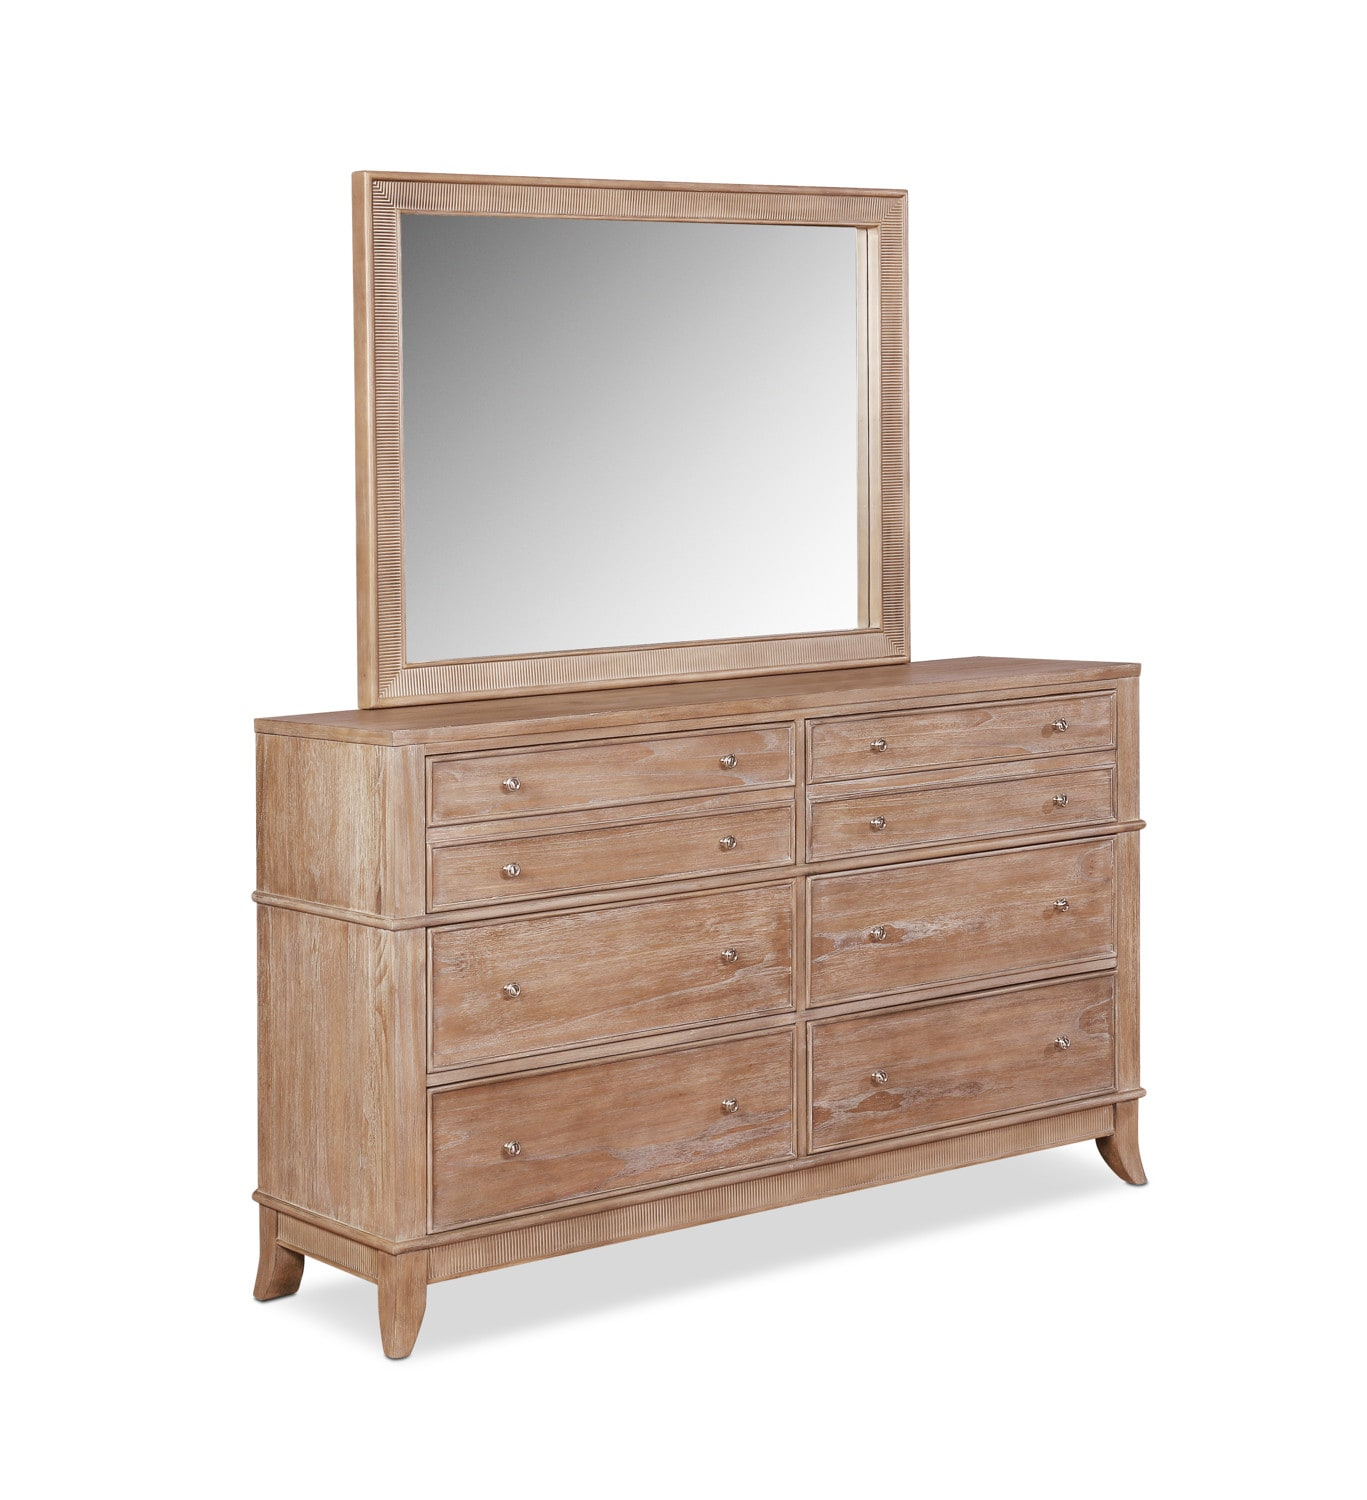 Bedroom Furniture - Hazel Dresser and Mirror